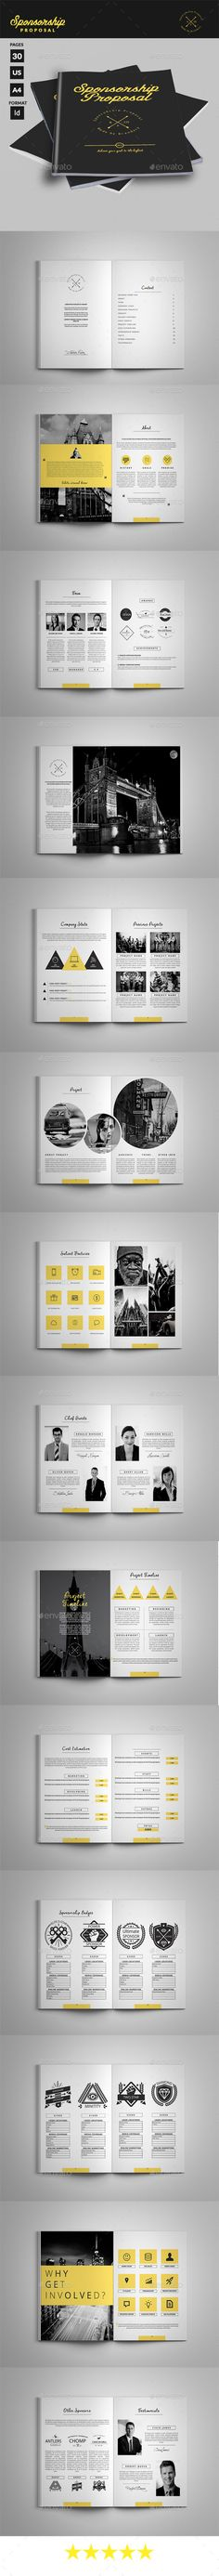 Sponsorship Proposal Template #design Download: http://graphicriver.net/item/sponsorship-proposal/12838670?ref=ksioks